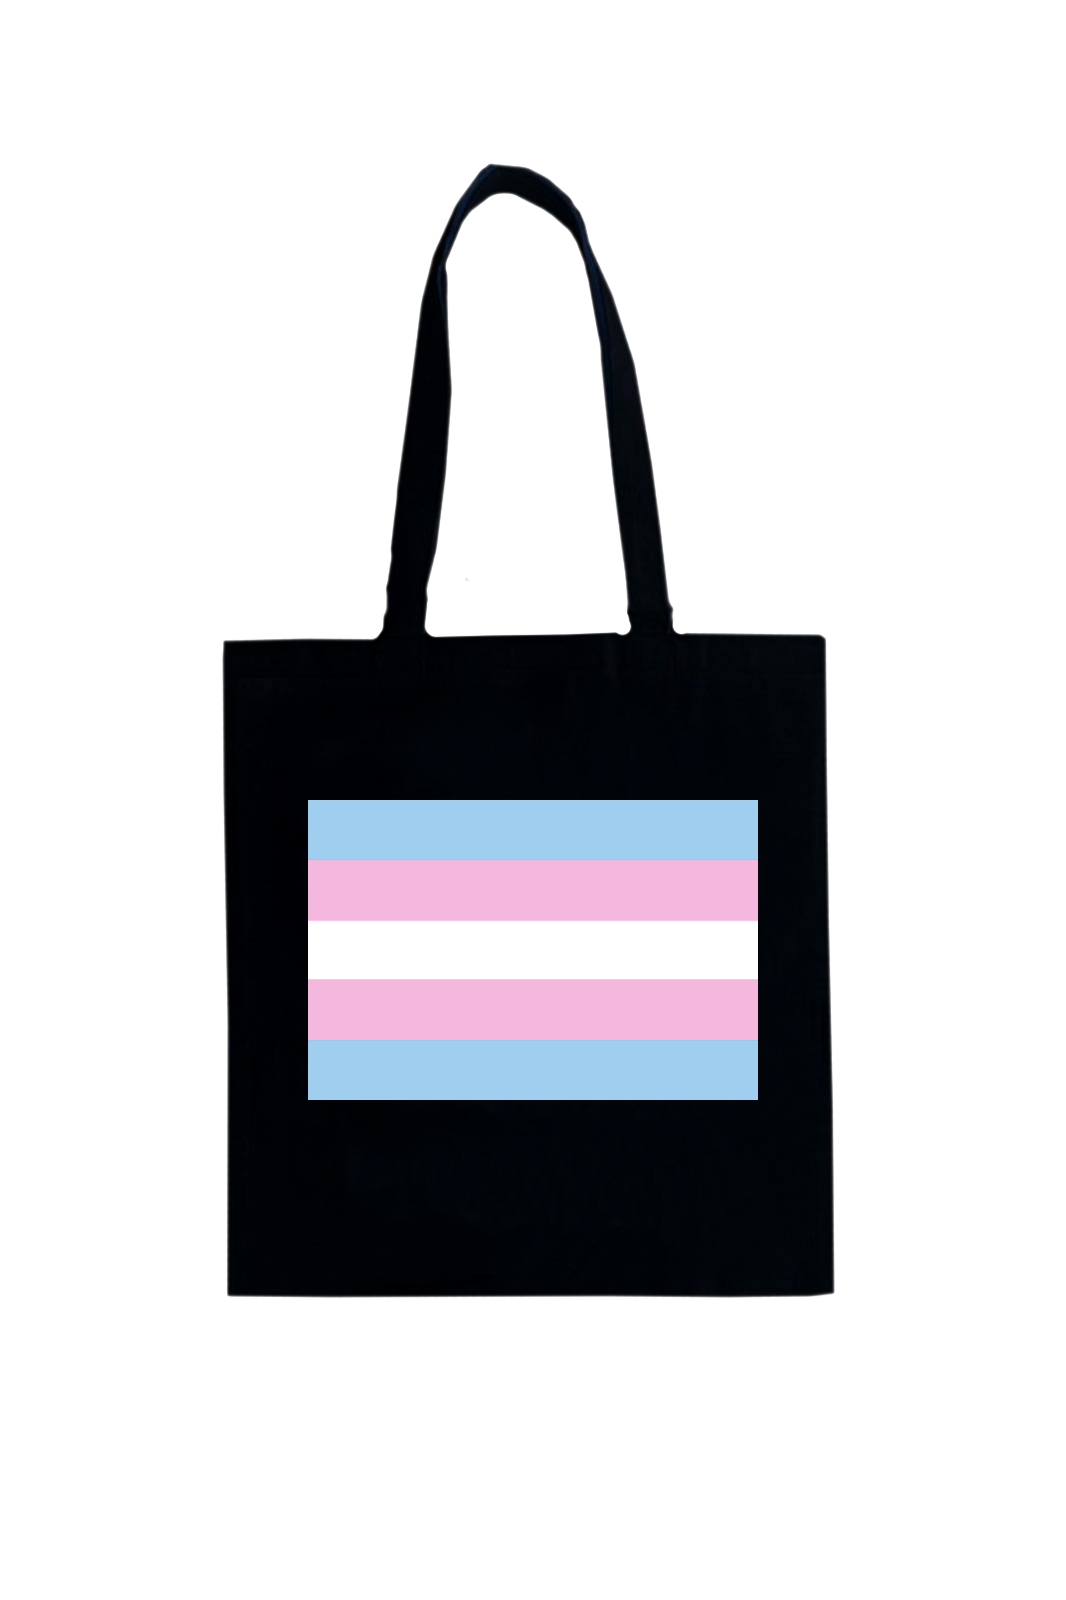 Tote Bag Trans flag